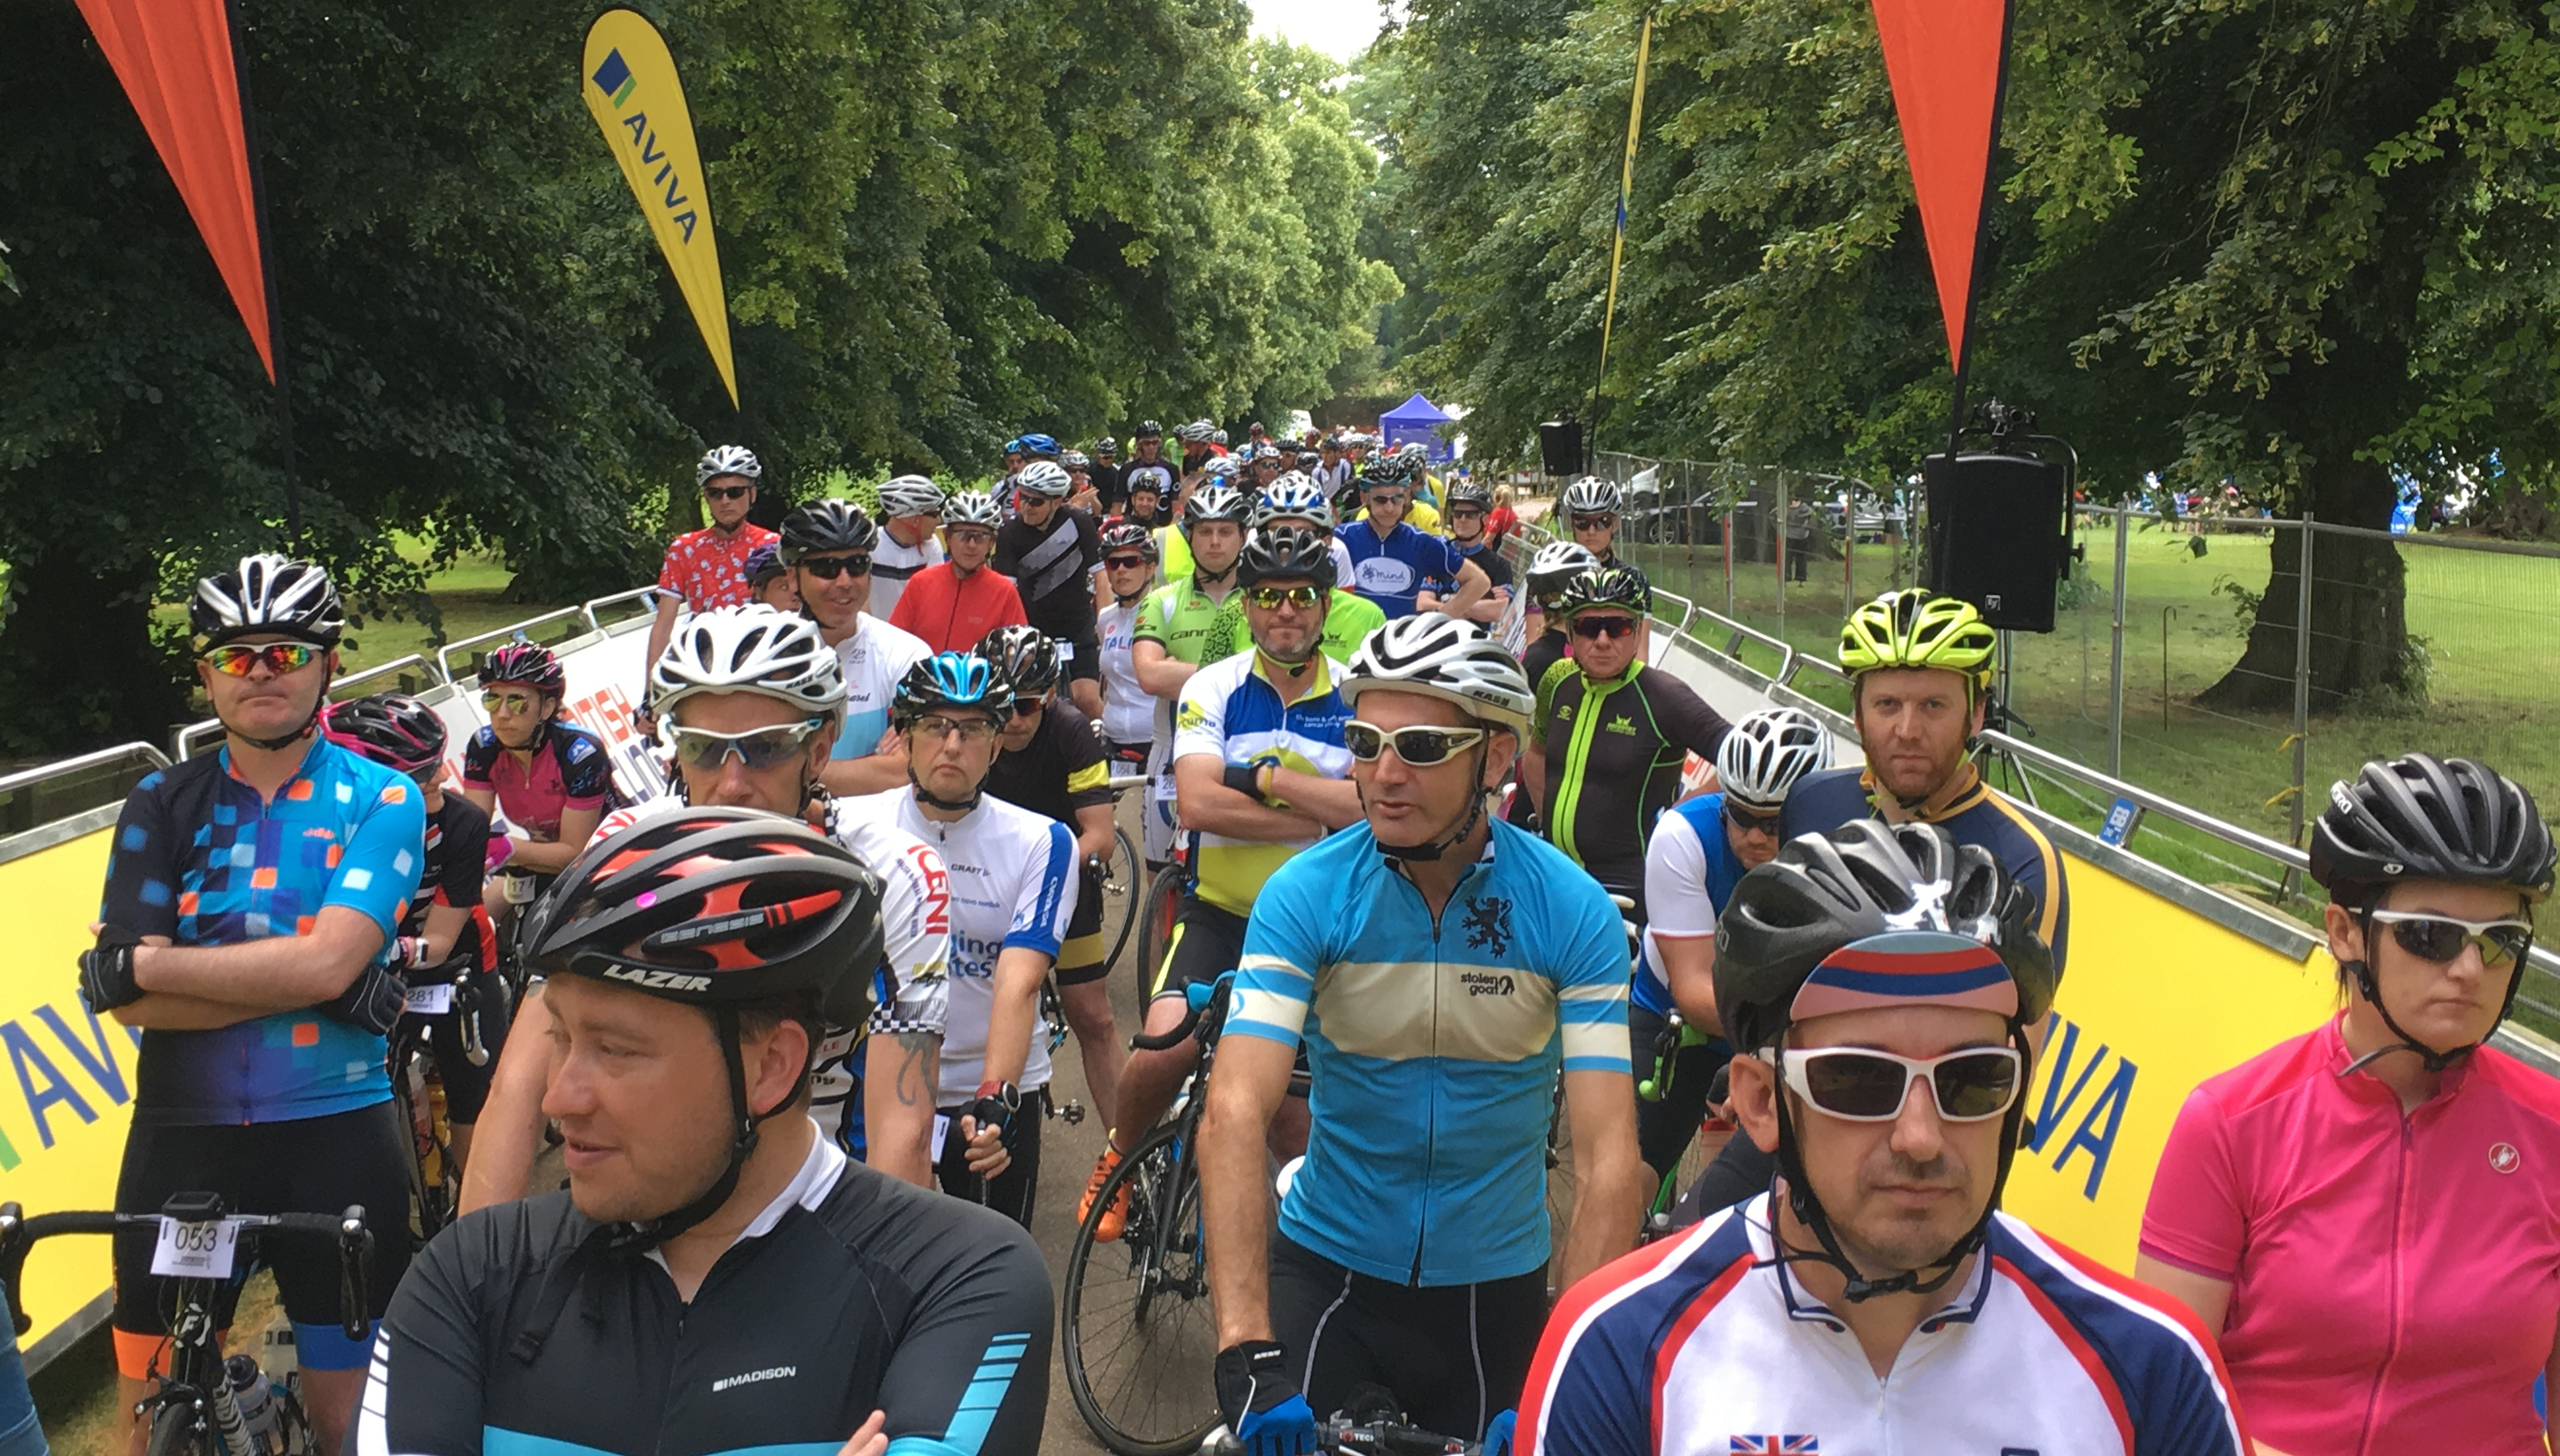 Hundreds of cyclists complete official Aviva Women's Tour sportive